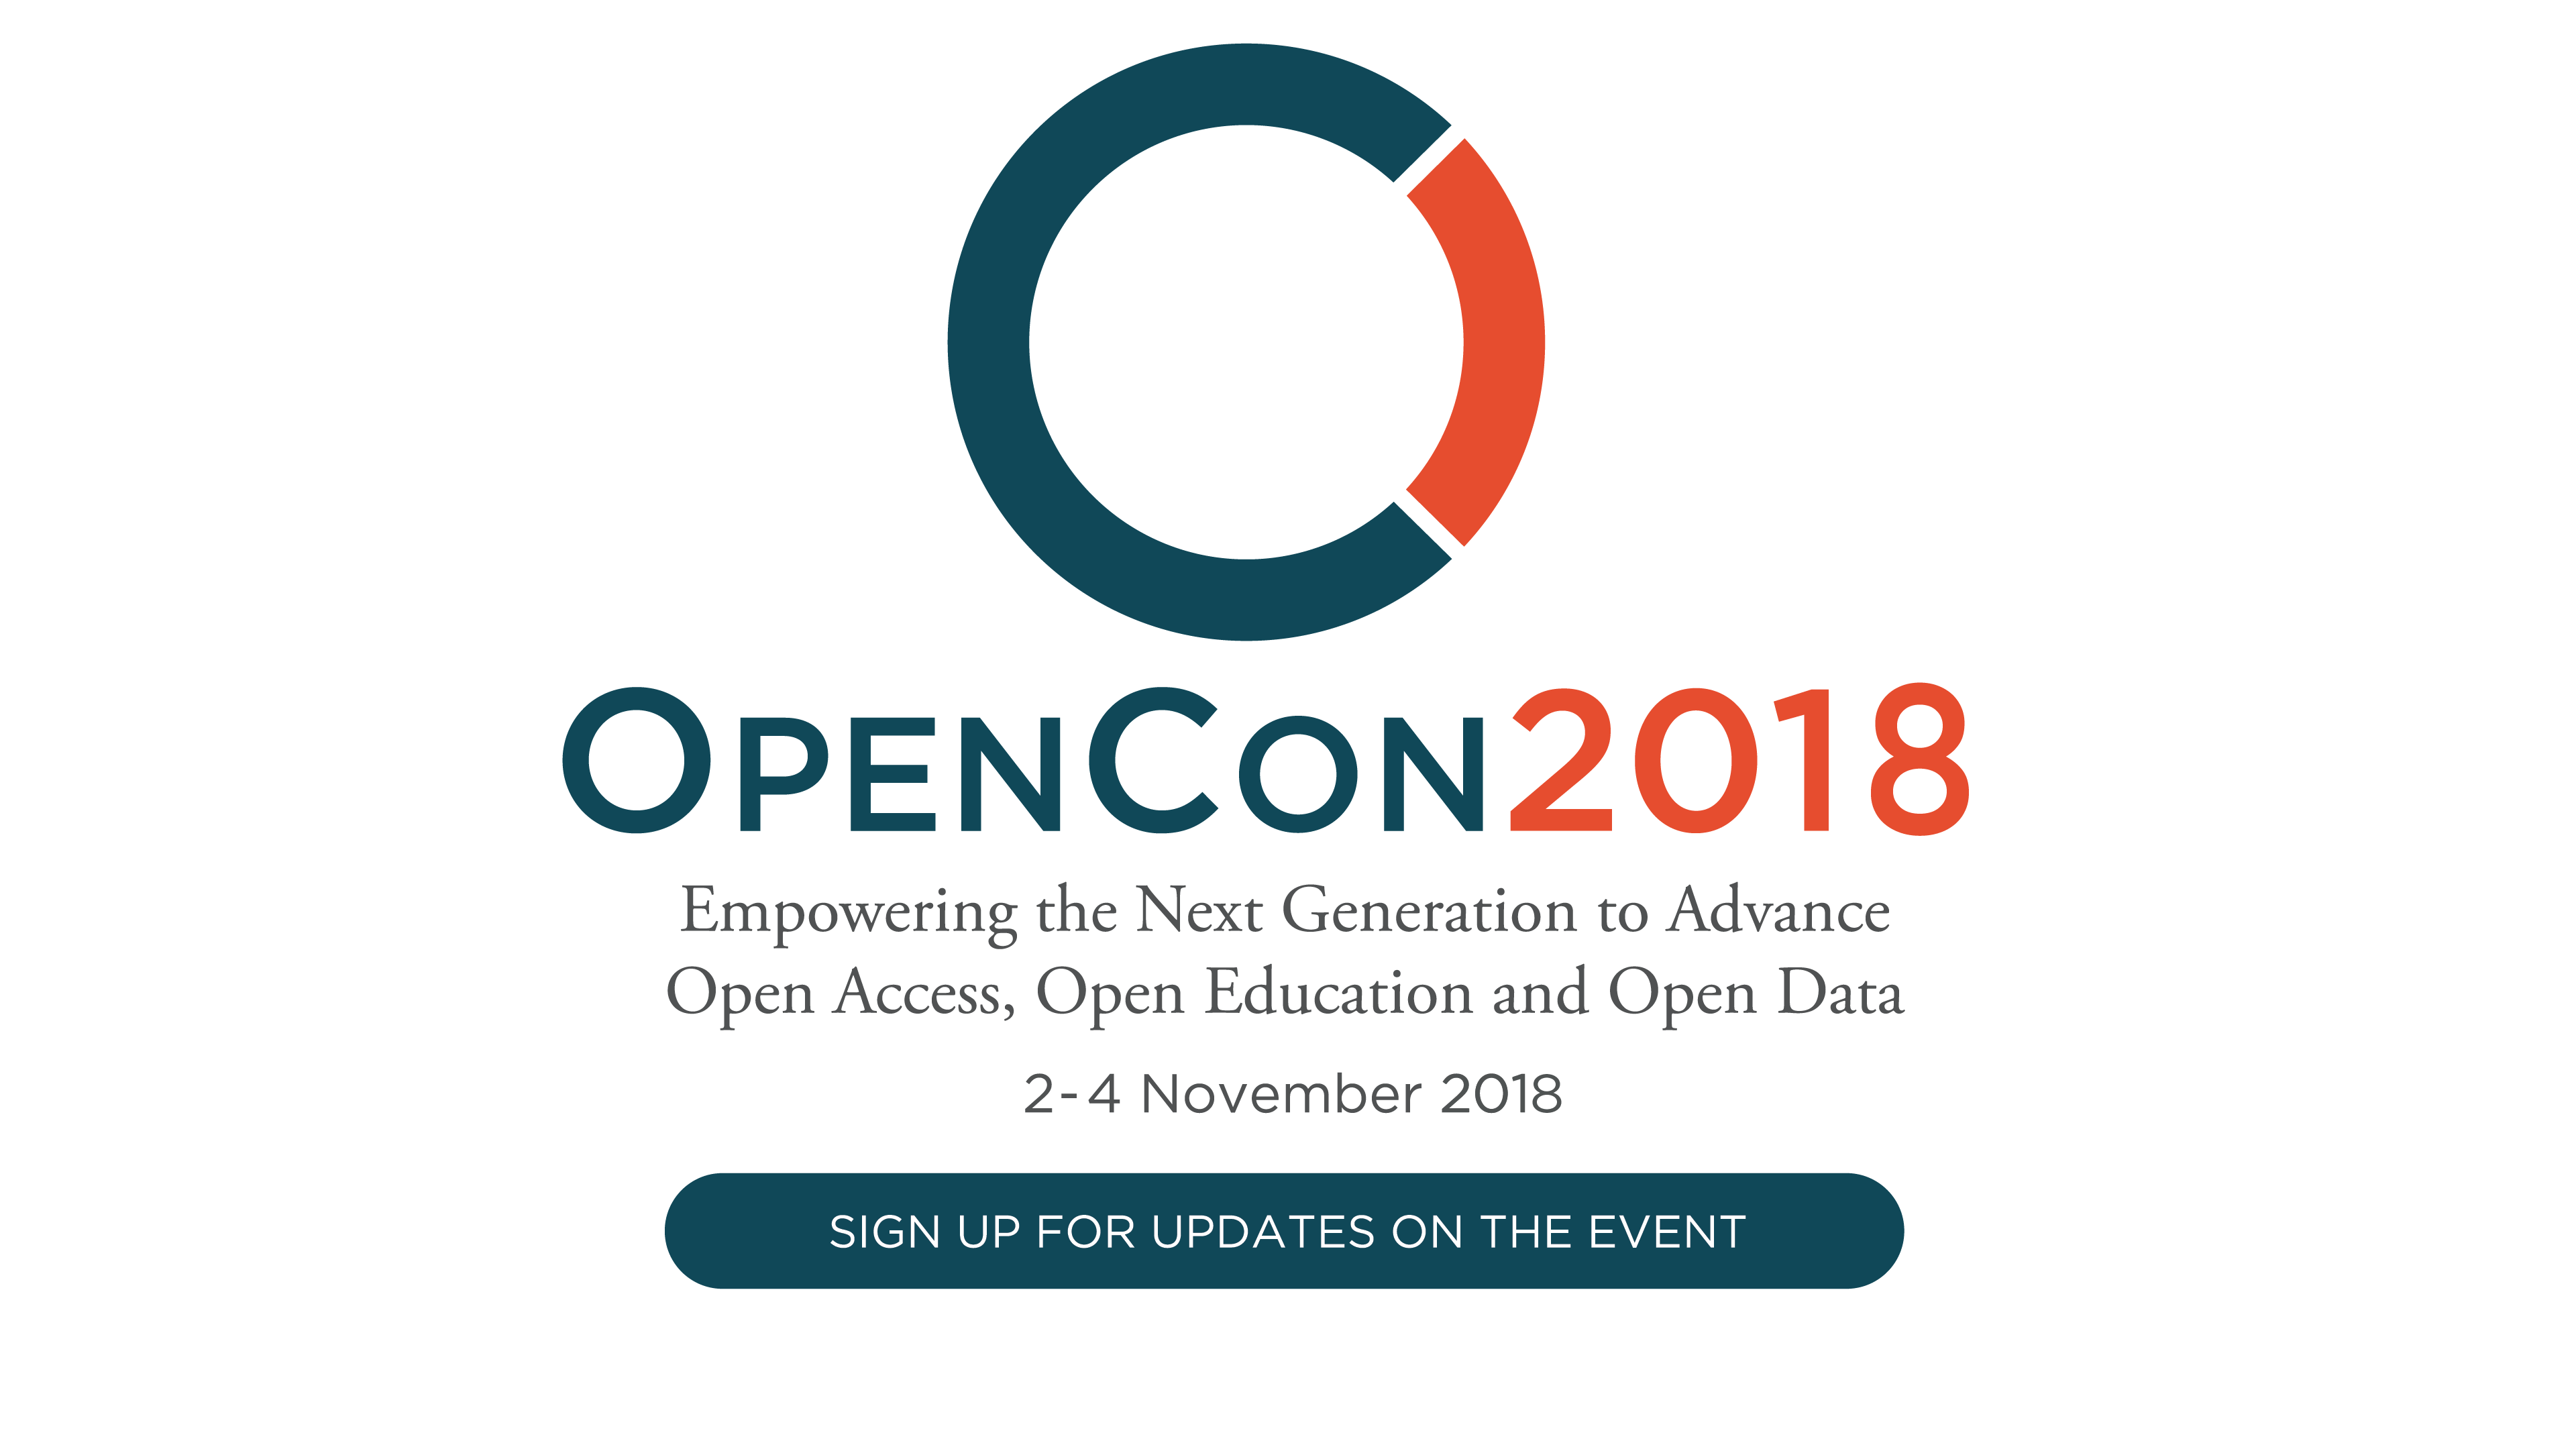 Logo Text: Empowering the Next Generation to Advance Open Access, Open Education, and Open Data